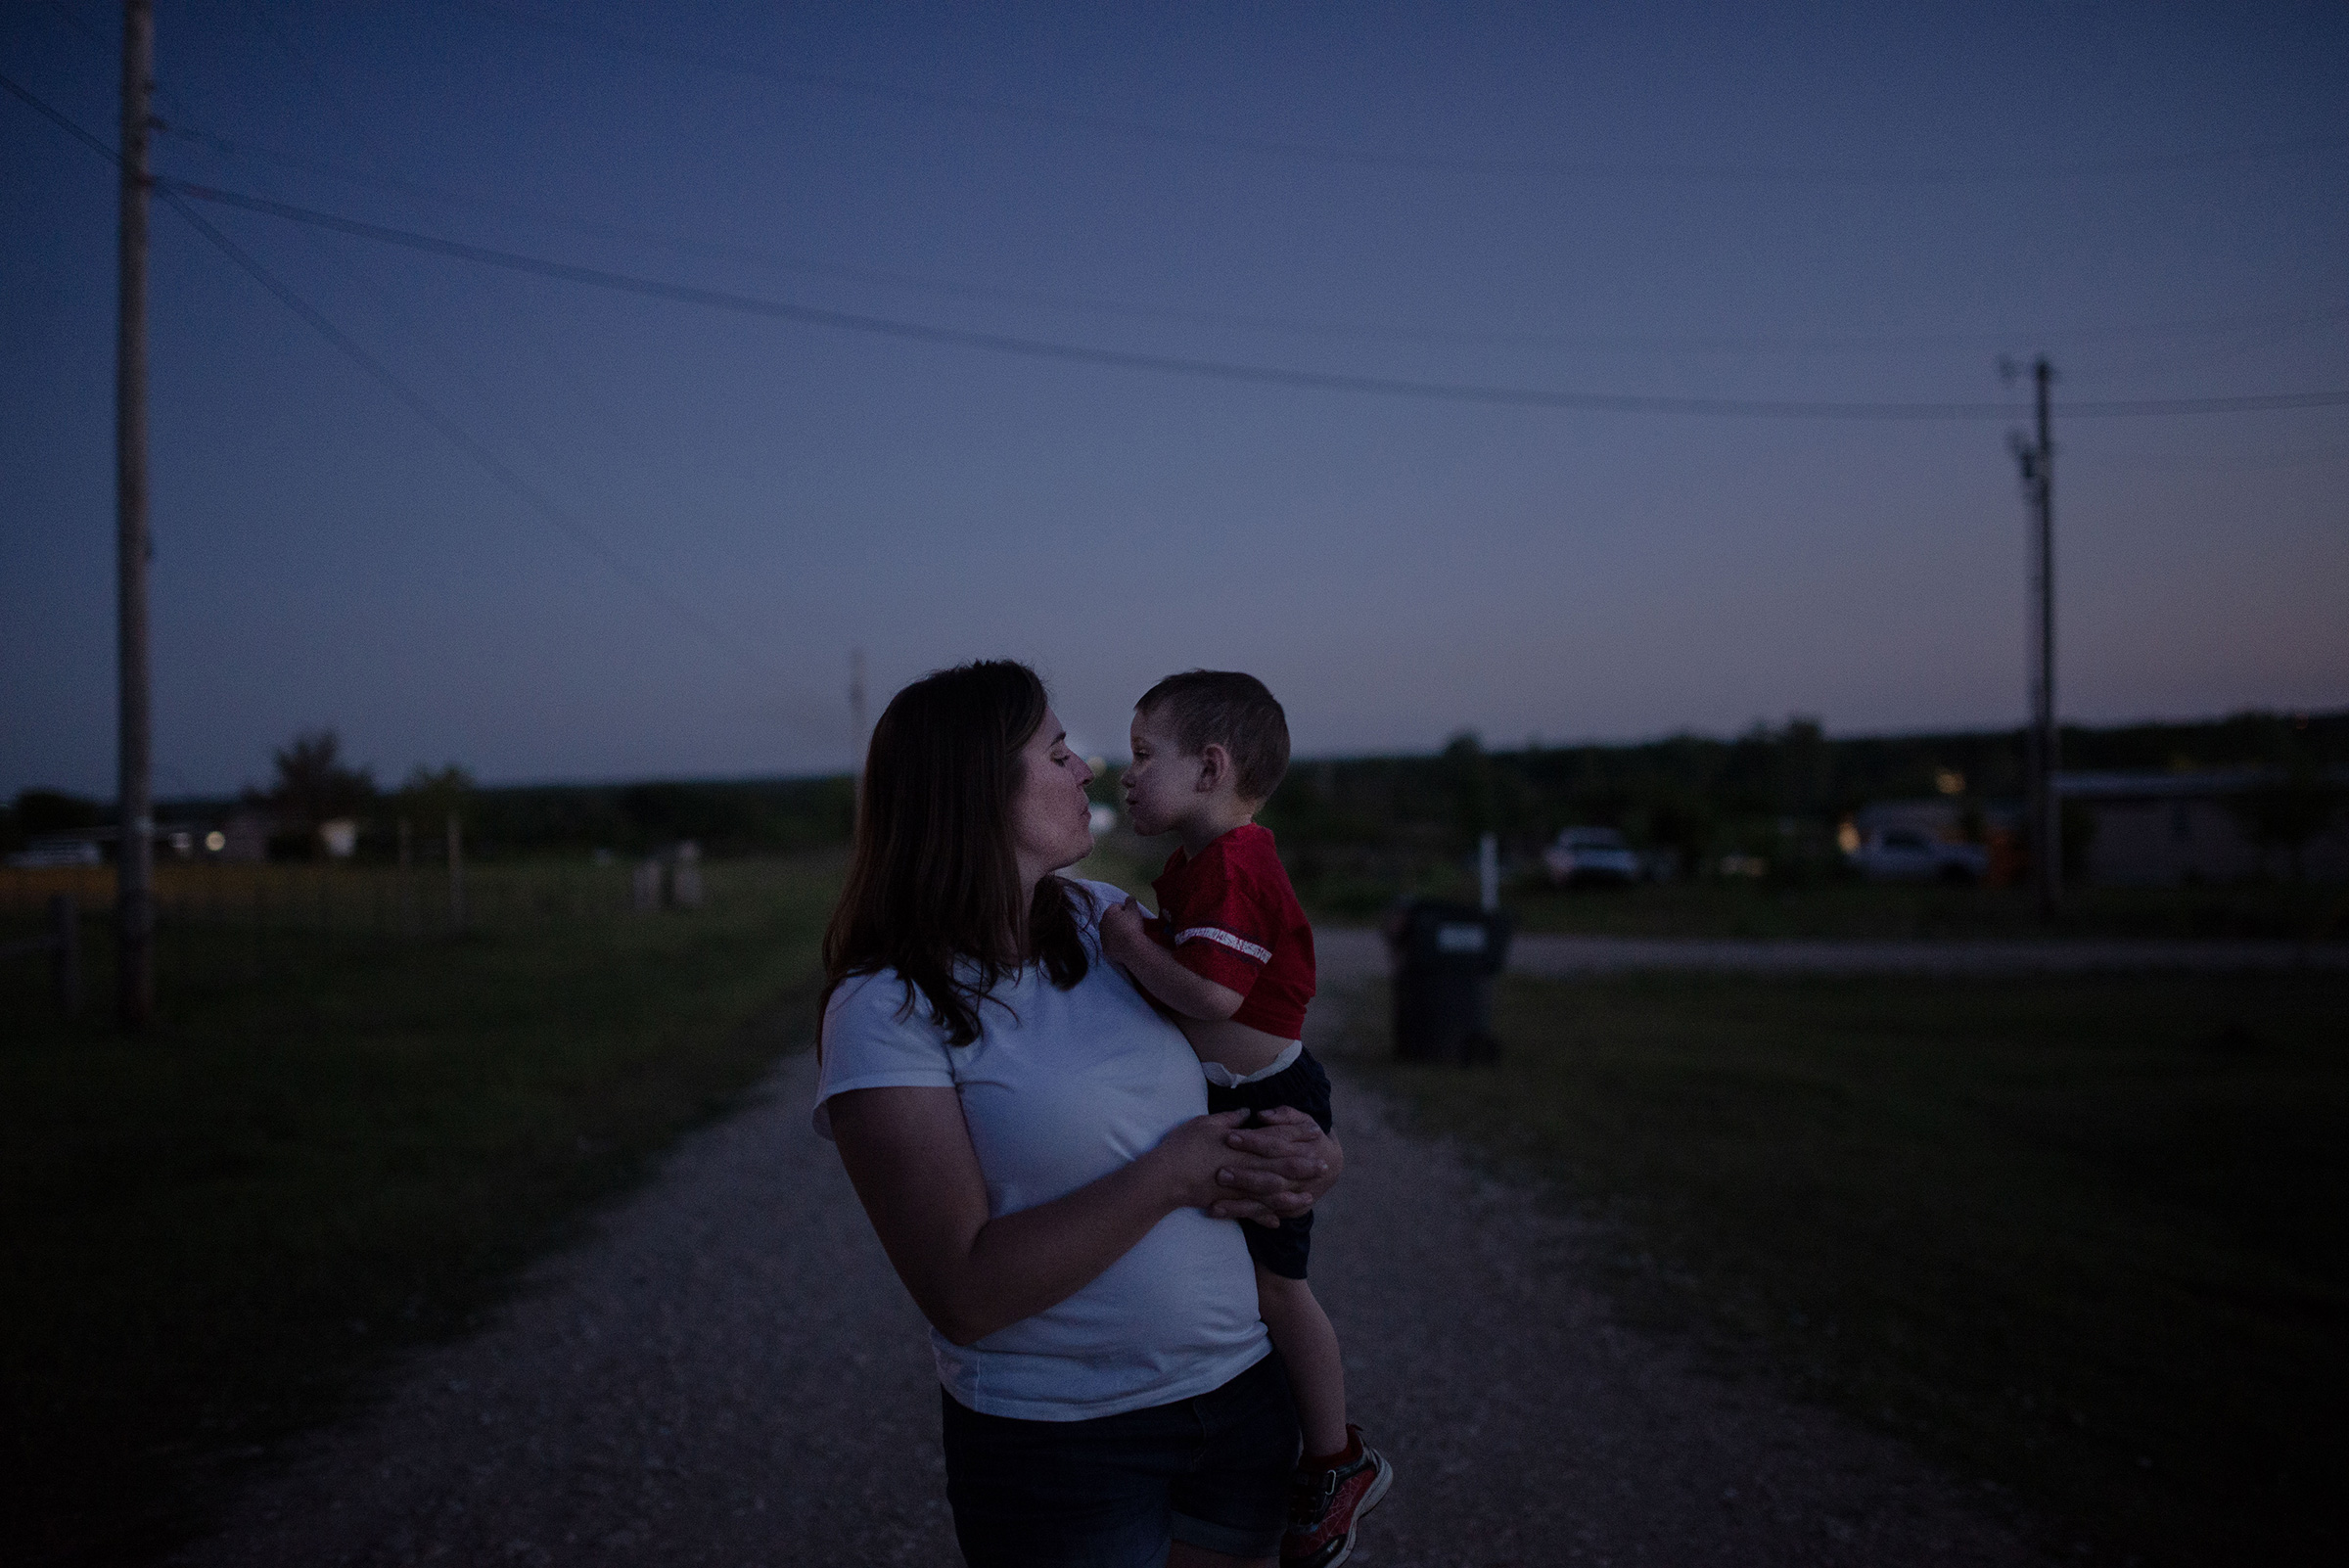 "Christina Thomason 39, and son Logan, Tecumseh, Okla. ""You can't tell people to stay home and not care for them. I'm watching everything we worked for being flushed down the toilet. How are we going to come back from this?"" she says."